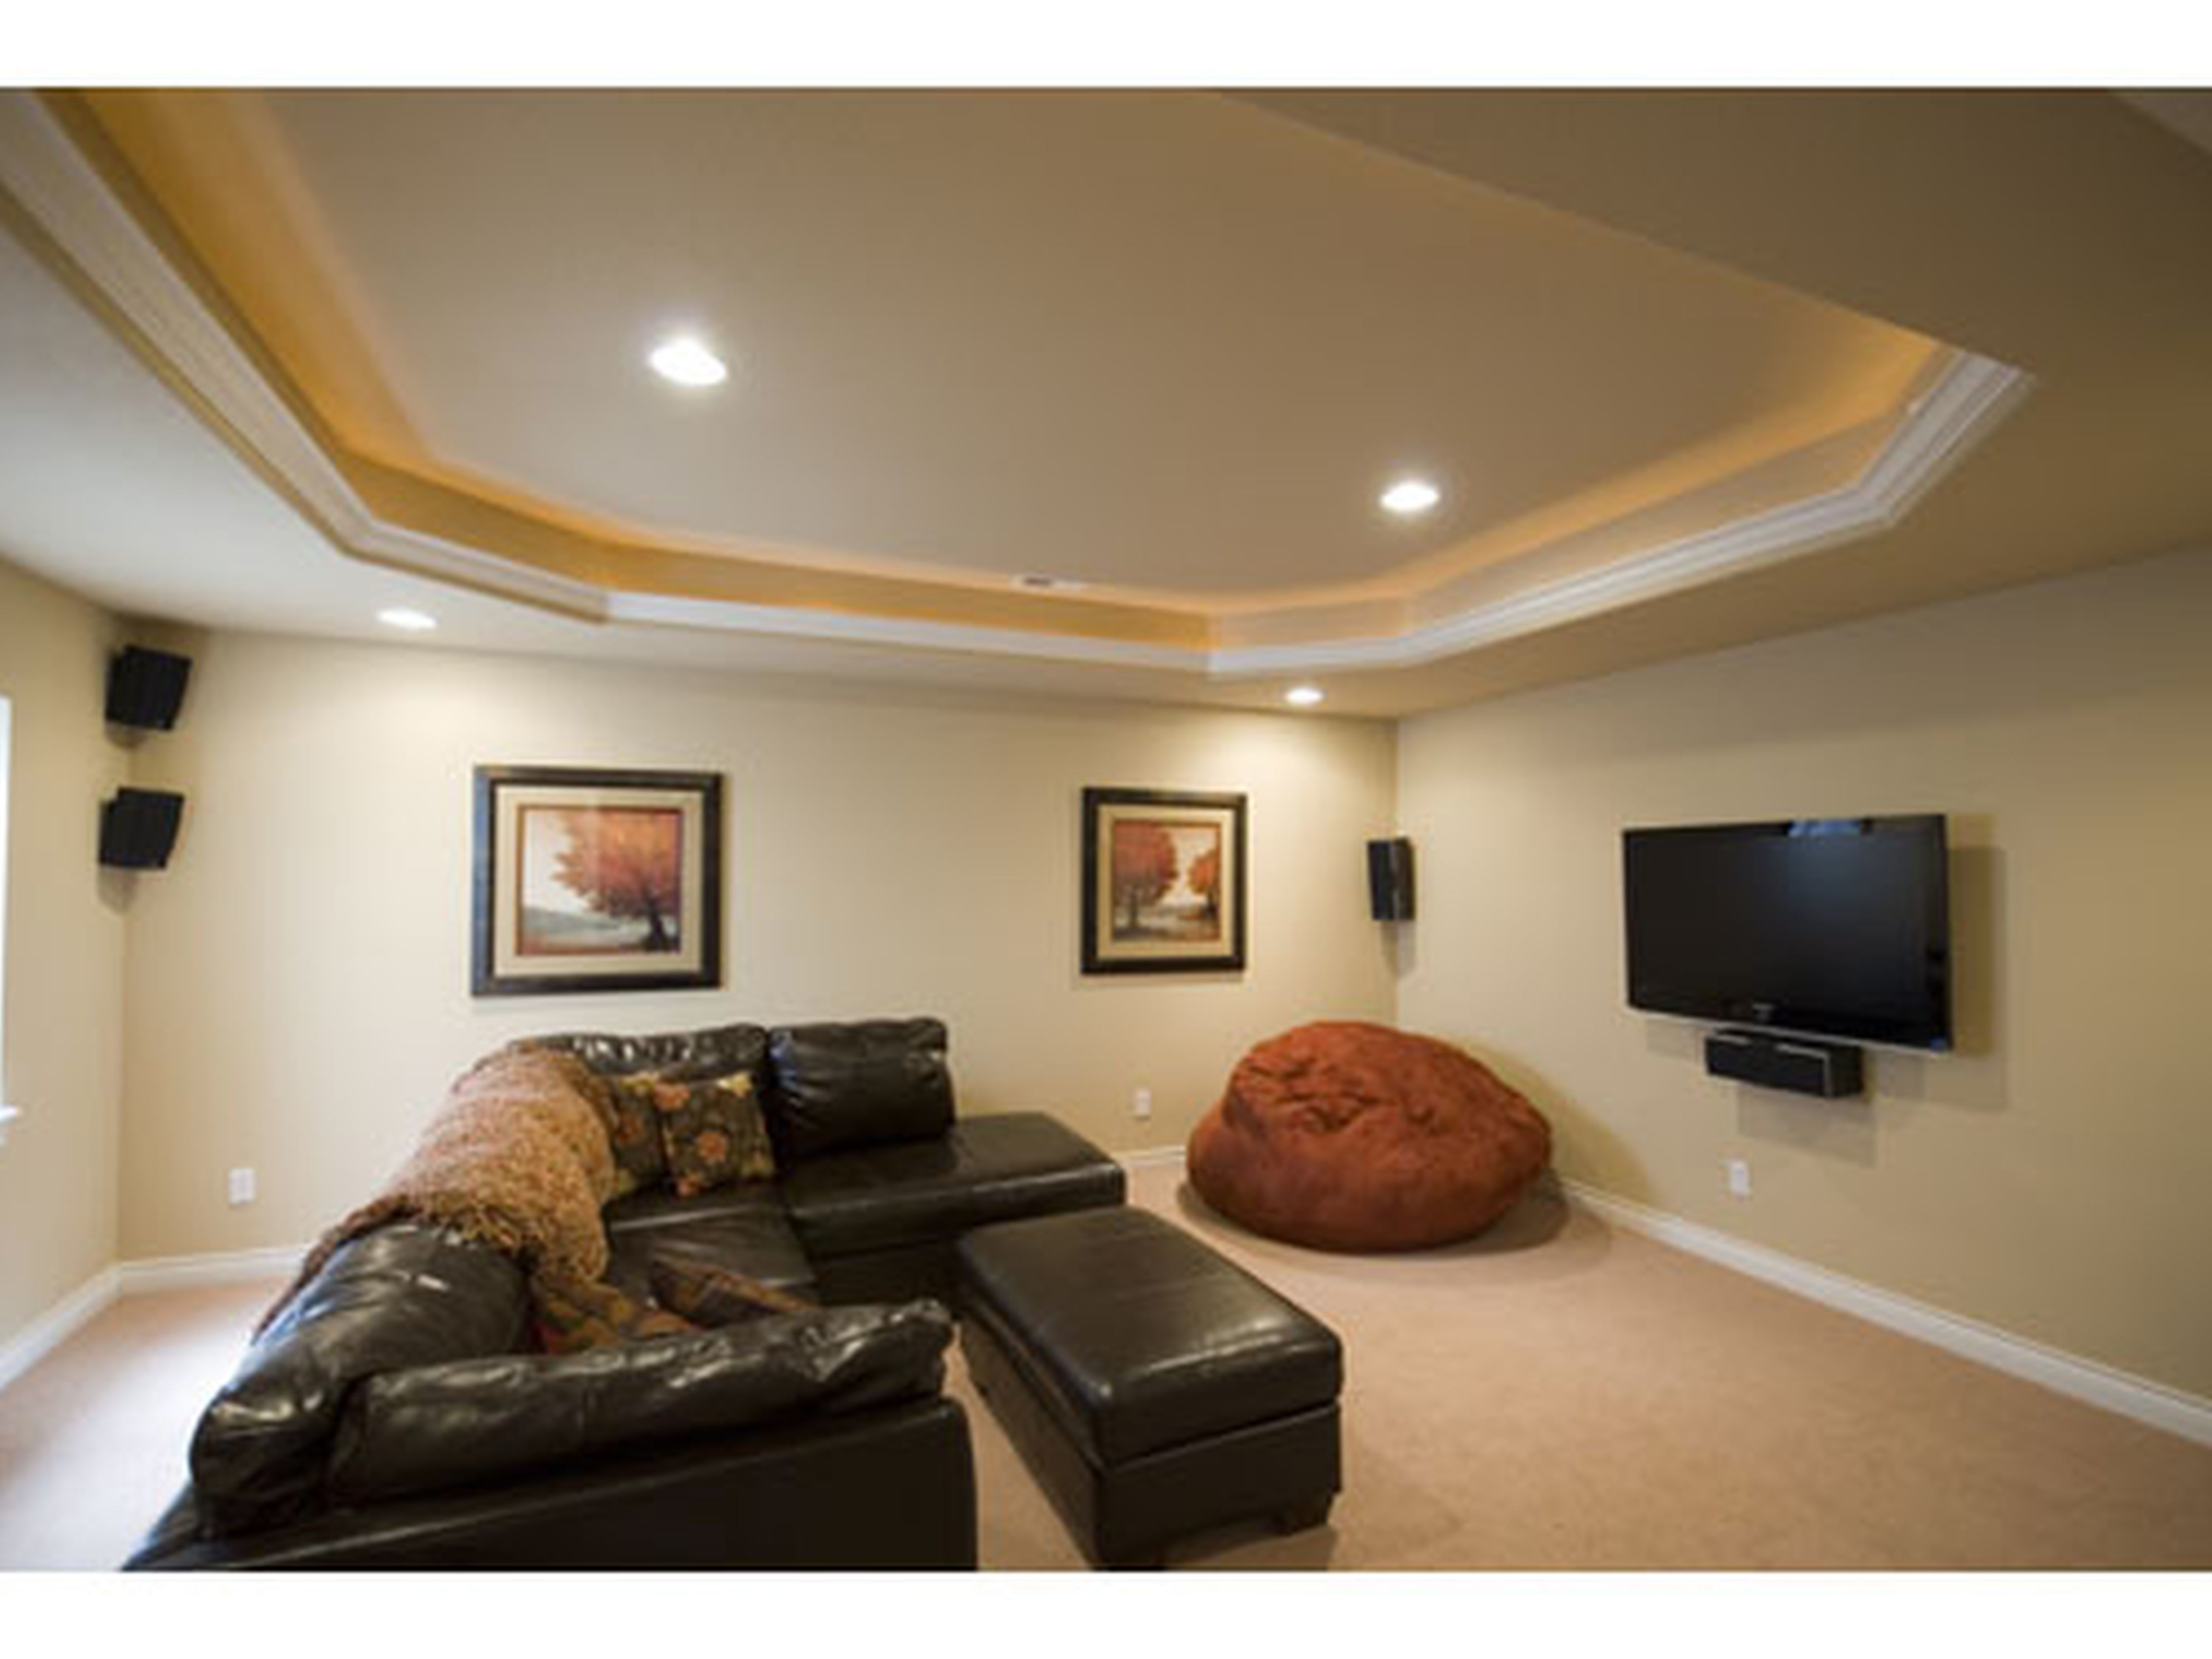 Best ideas about Small Basement Ideas On A Budget . Save or Pin Great Small Basement Ideas A Bud with About Now.